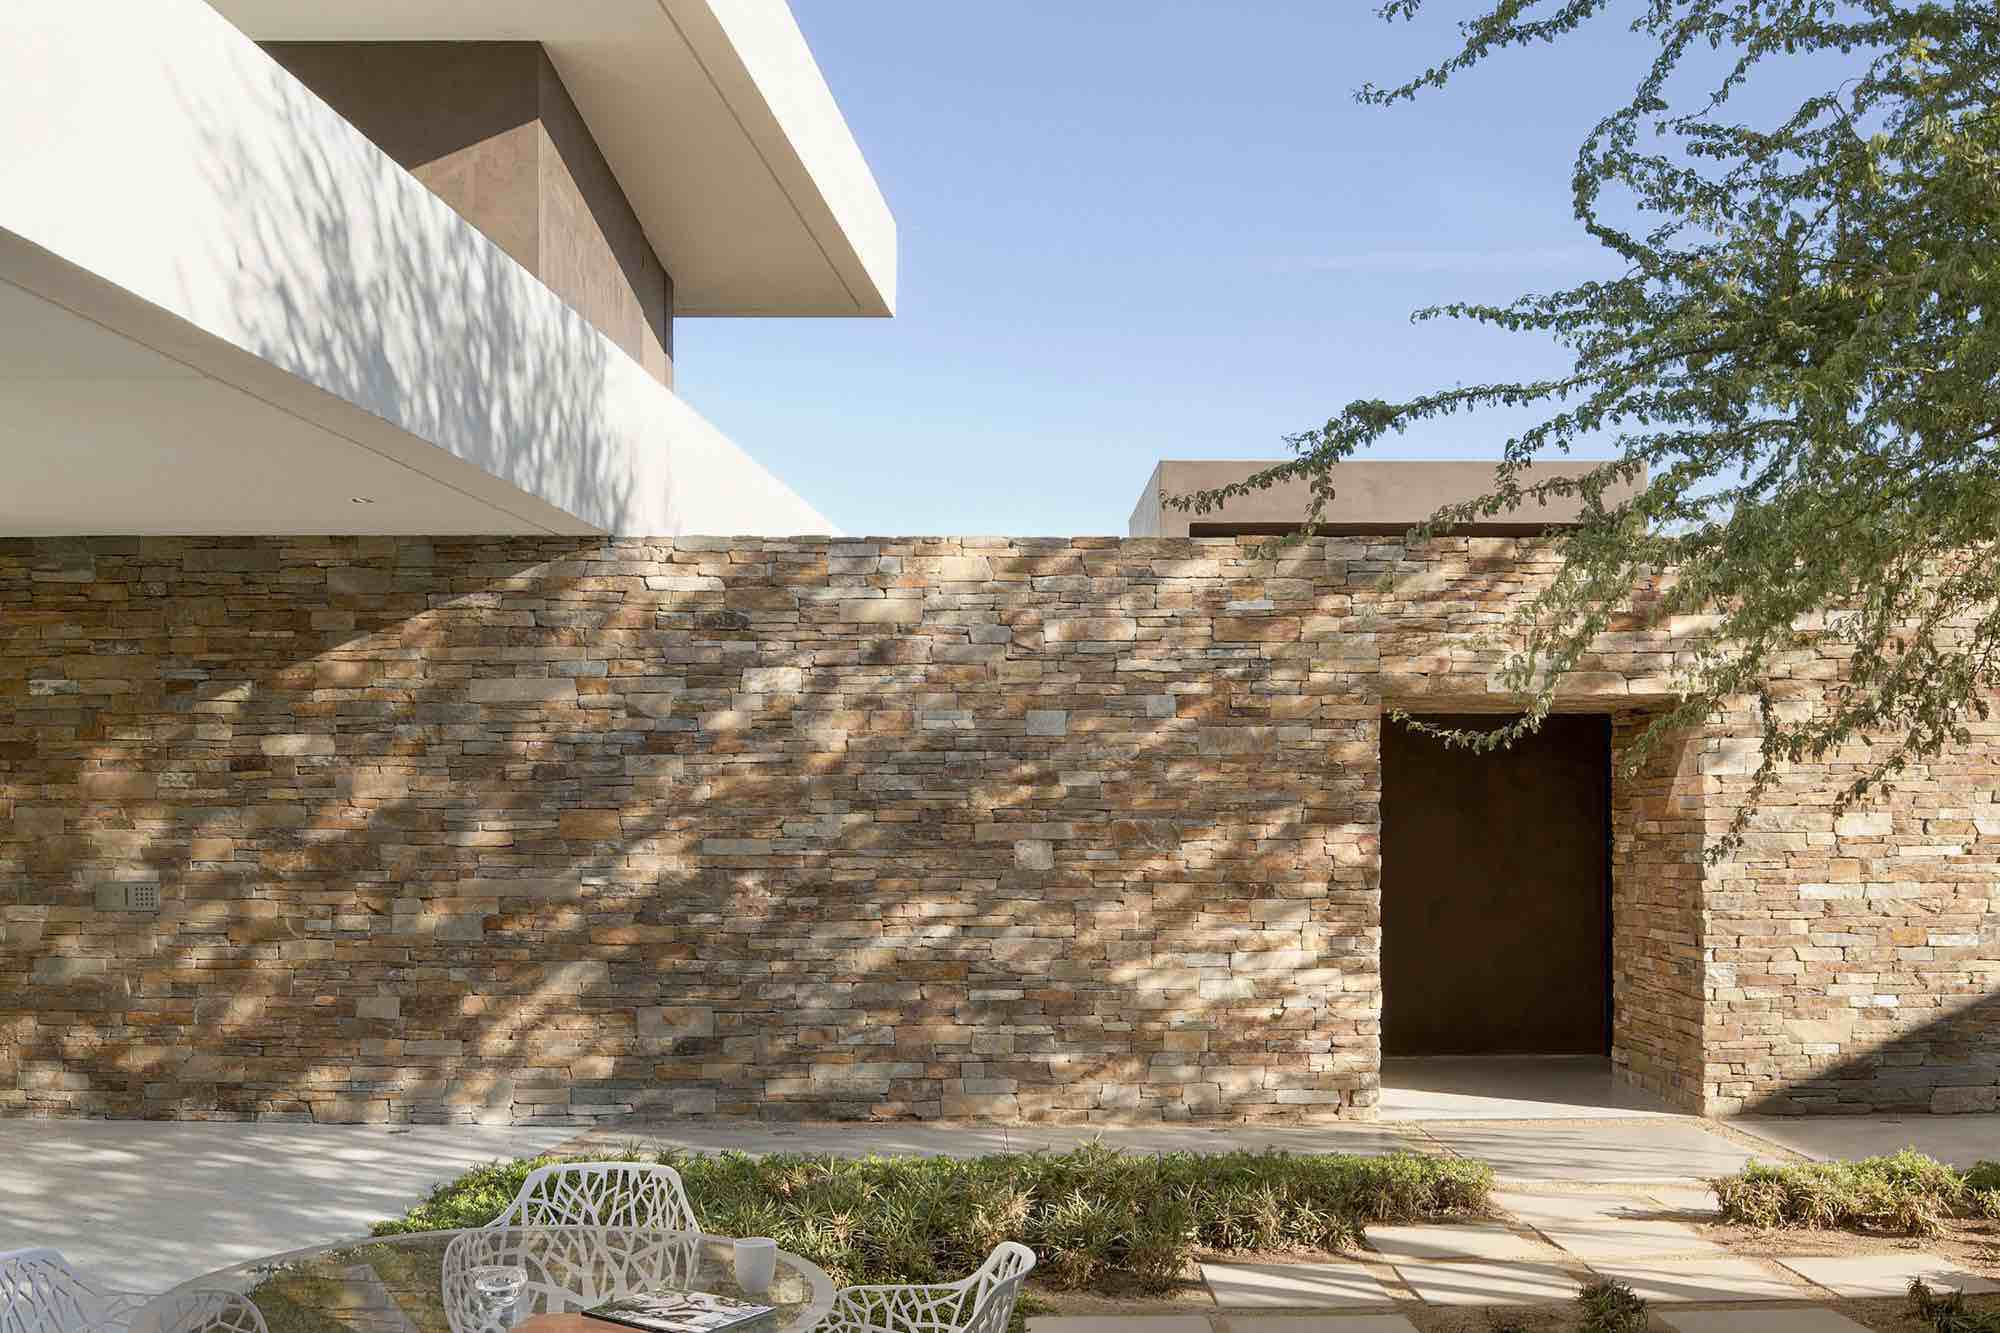 madison housexten architecture - caandesign | architecture and